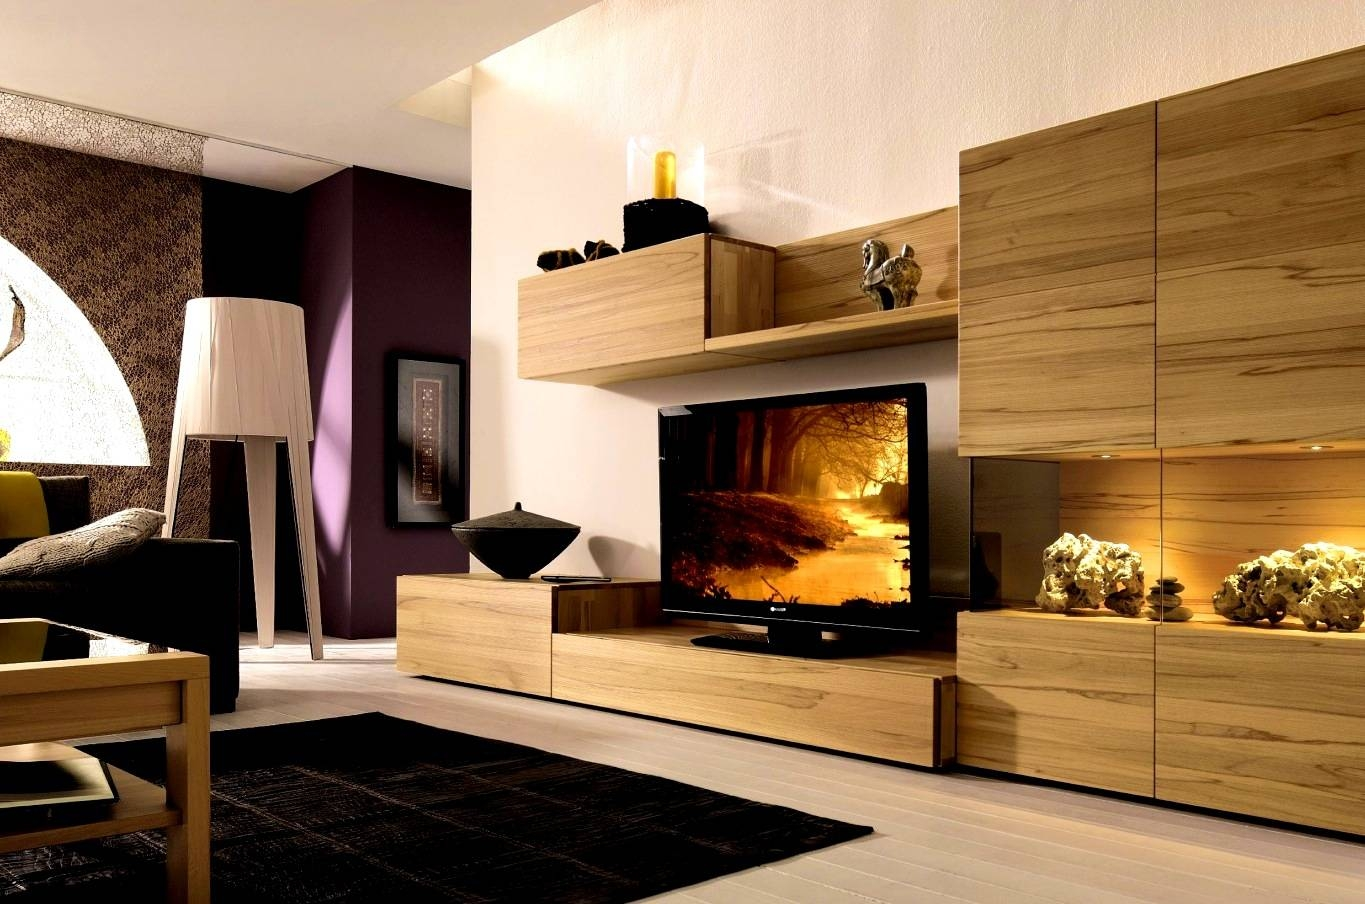 Bathroom : Astonishing Diy Wood Pallet Wall Ideas And Paneling Within Most Popular Media Room Wall Art (View 19 of 20)